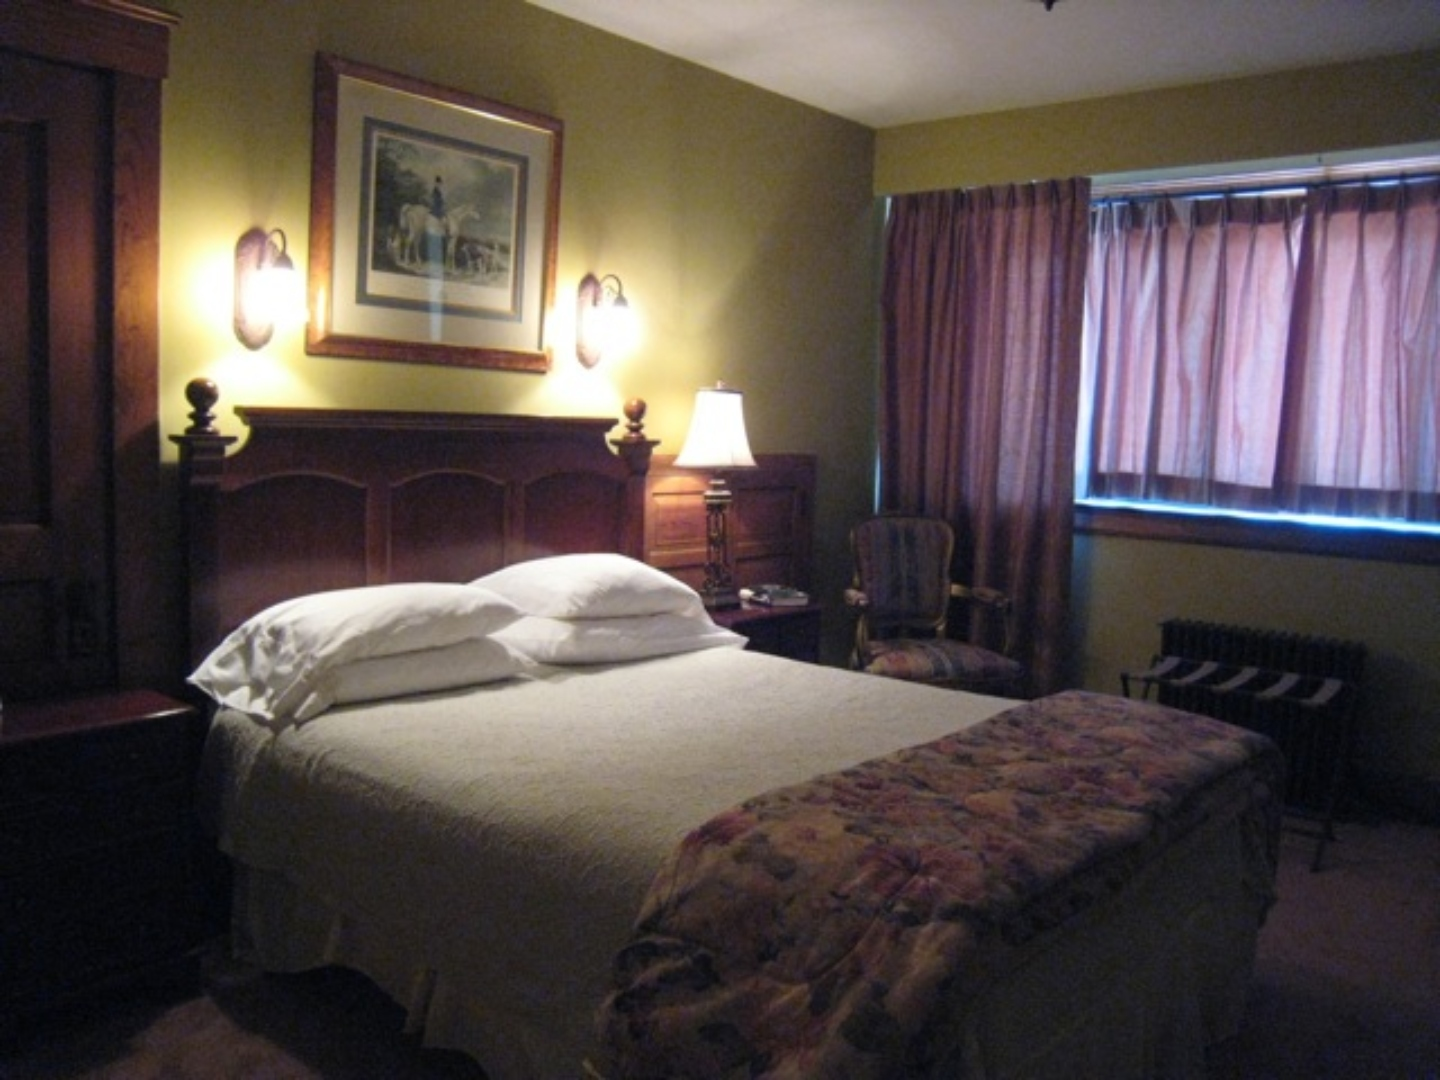 A bedroom with a large bed in a hotel room at The Clifton House Bed and Breakfast.